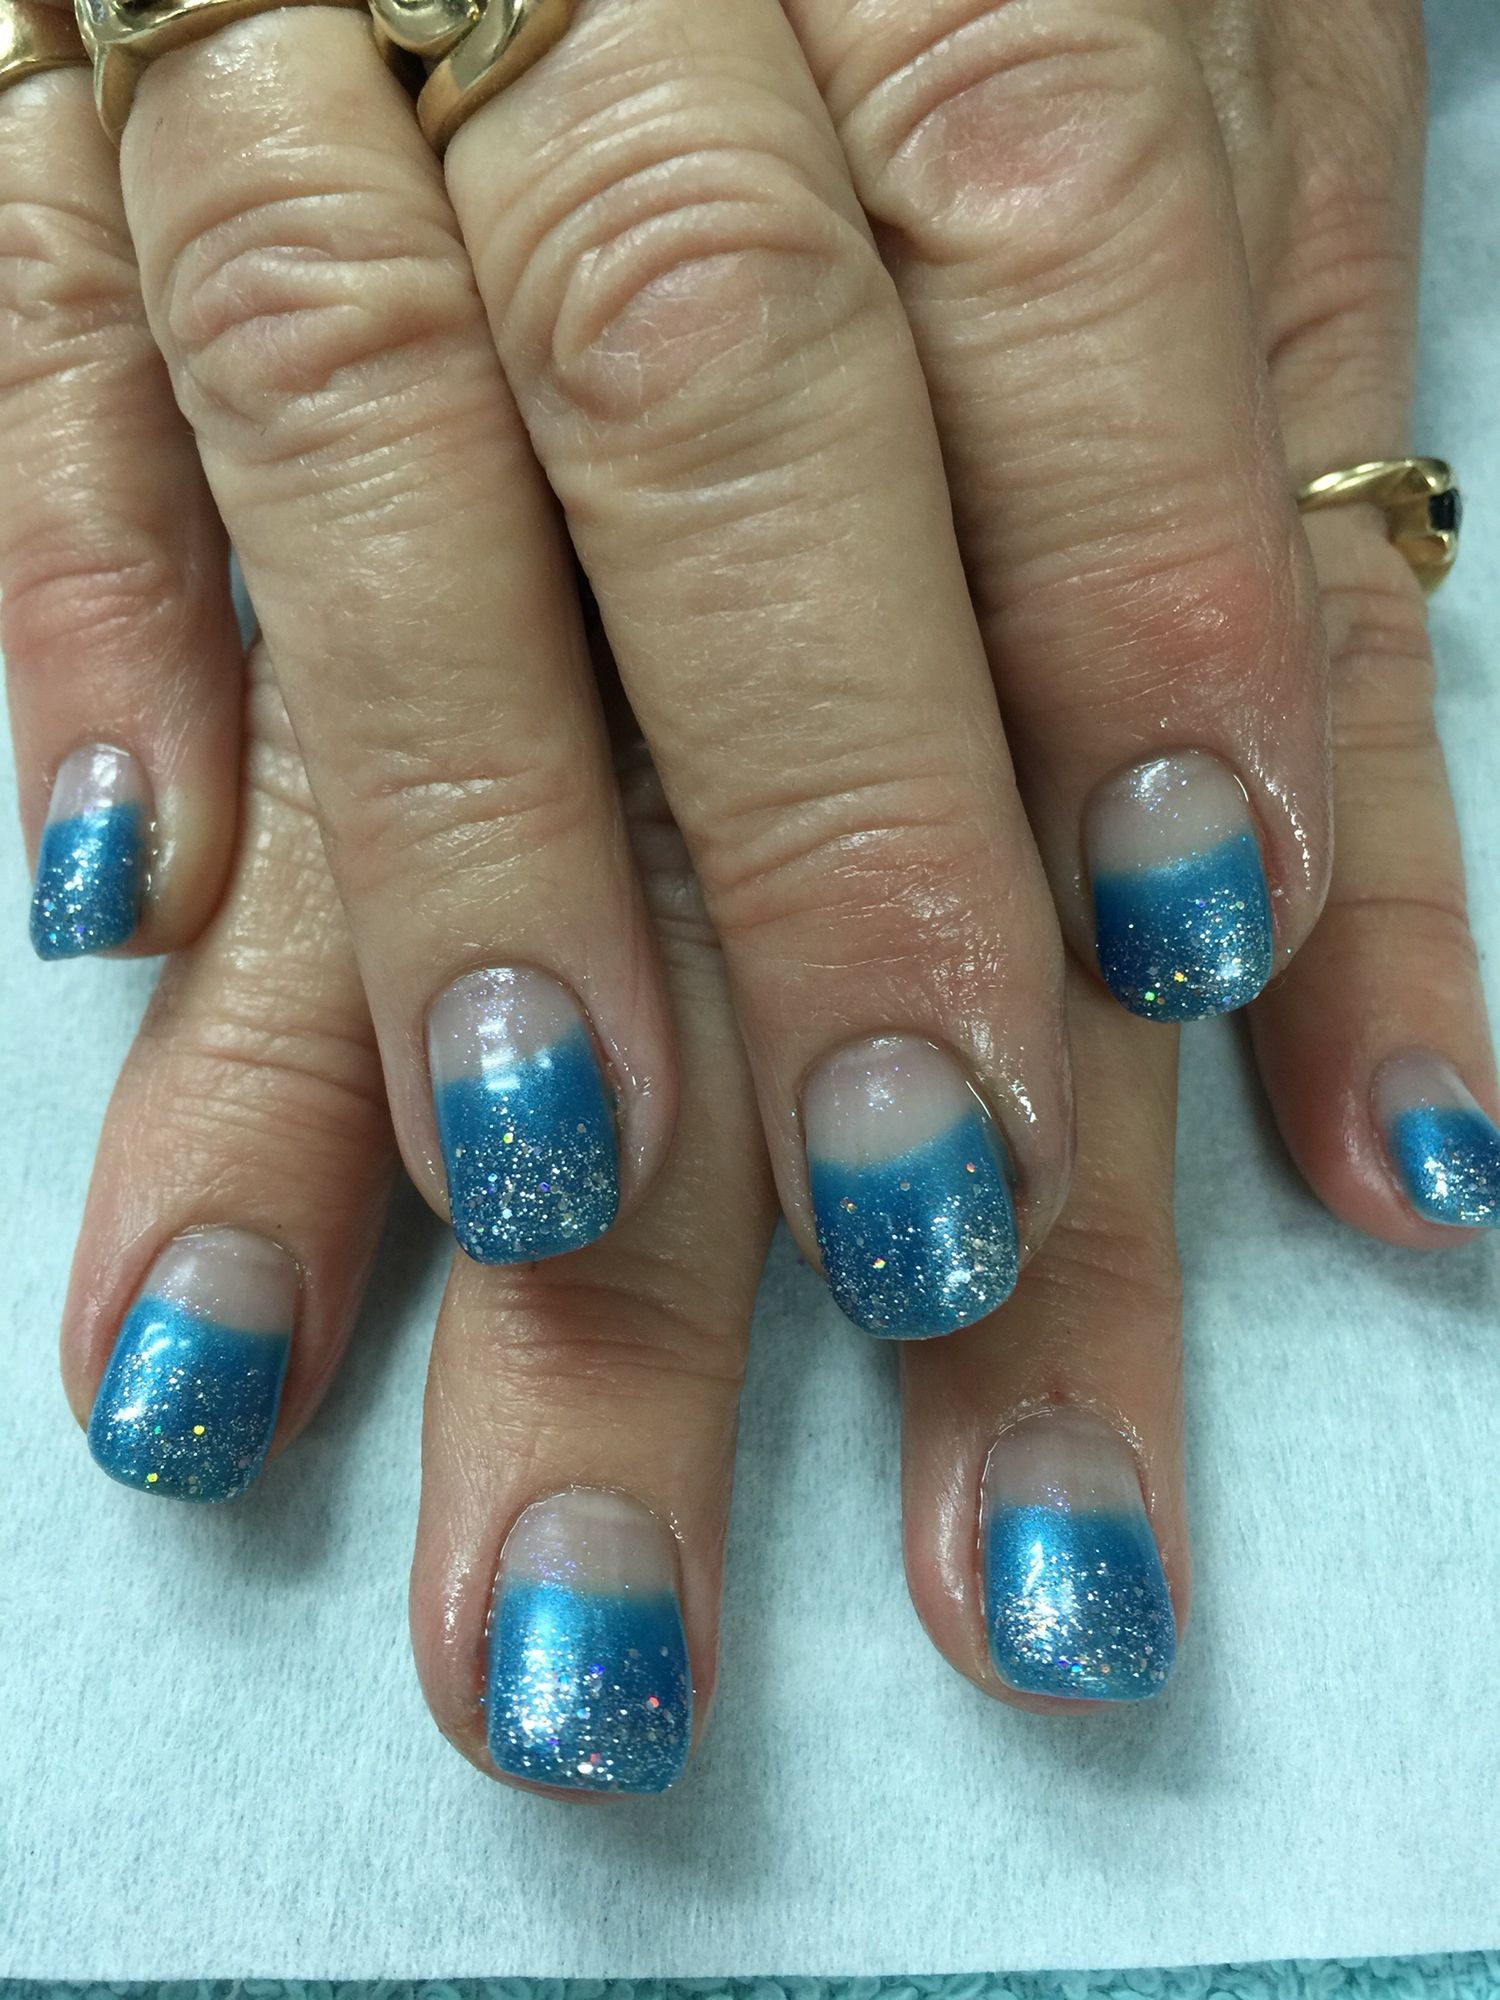 Blue High French Silver Glitter Gradient gel polish over non-toxic odorless hard gel nails.